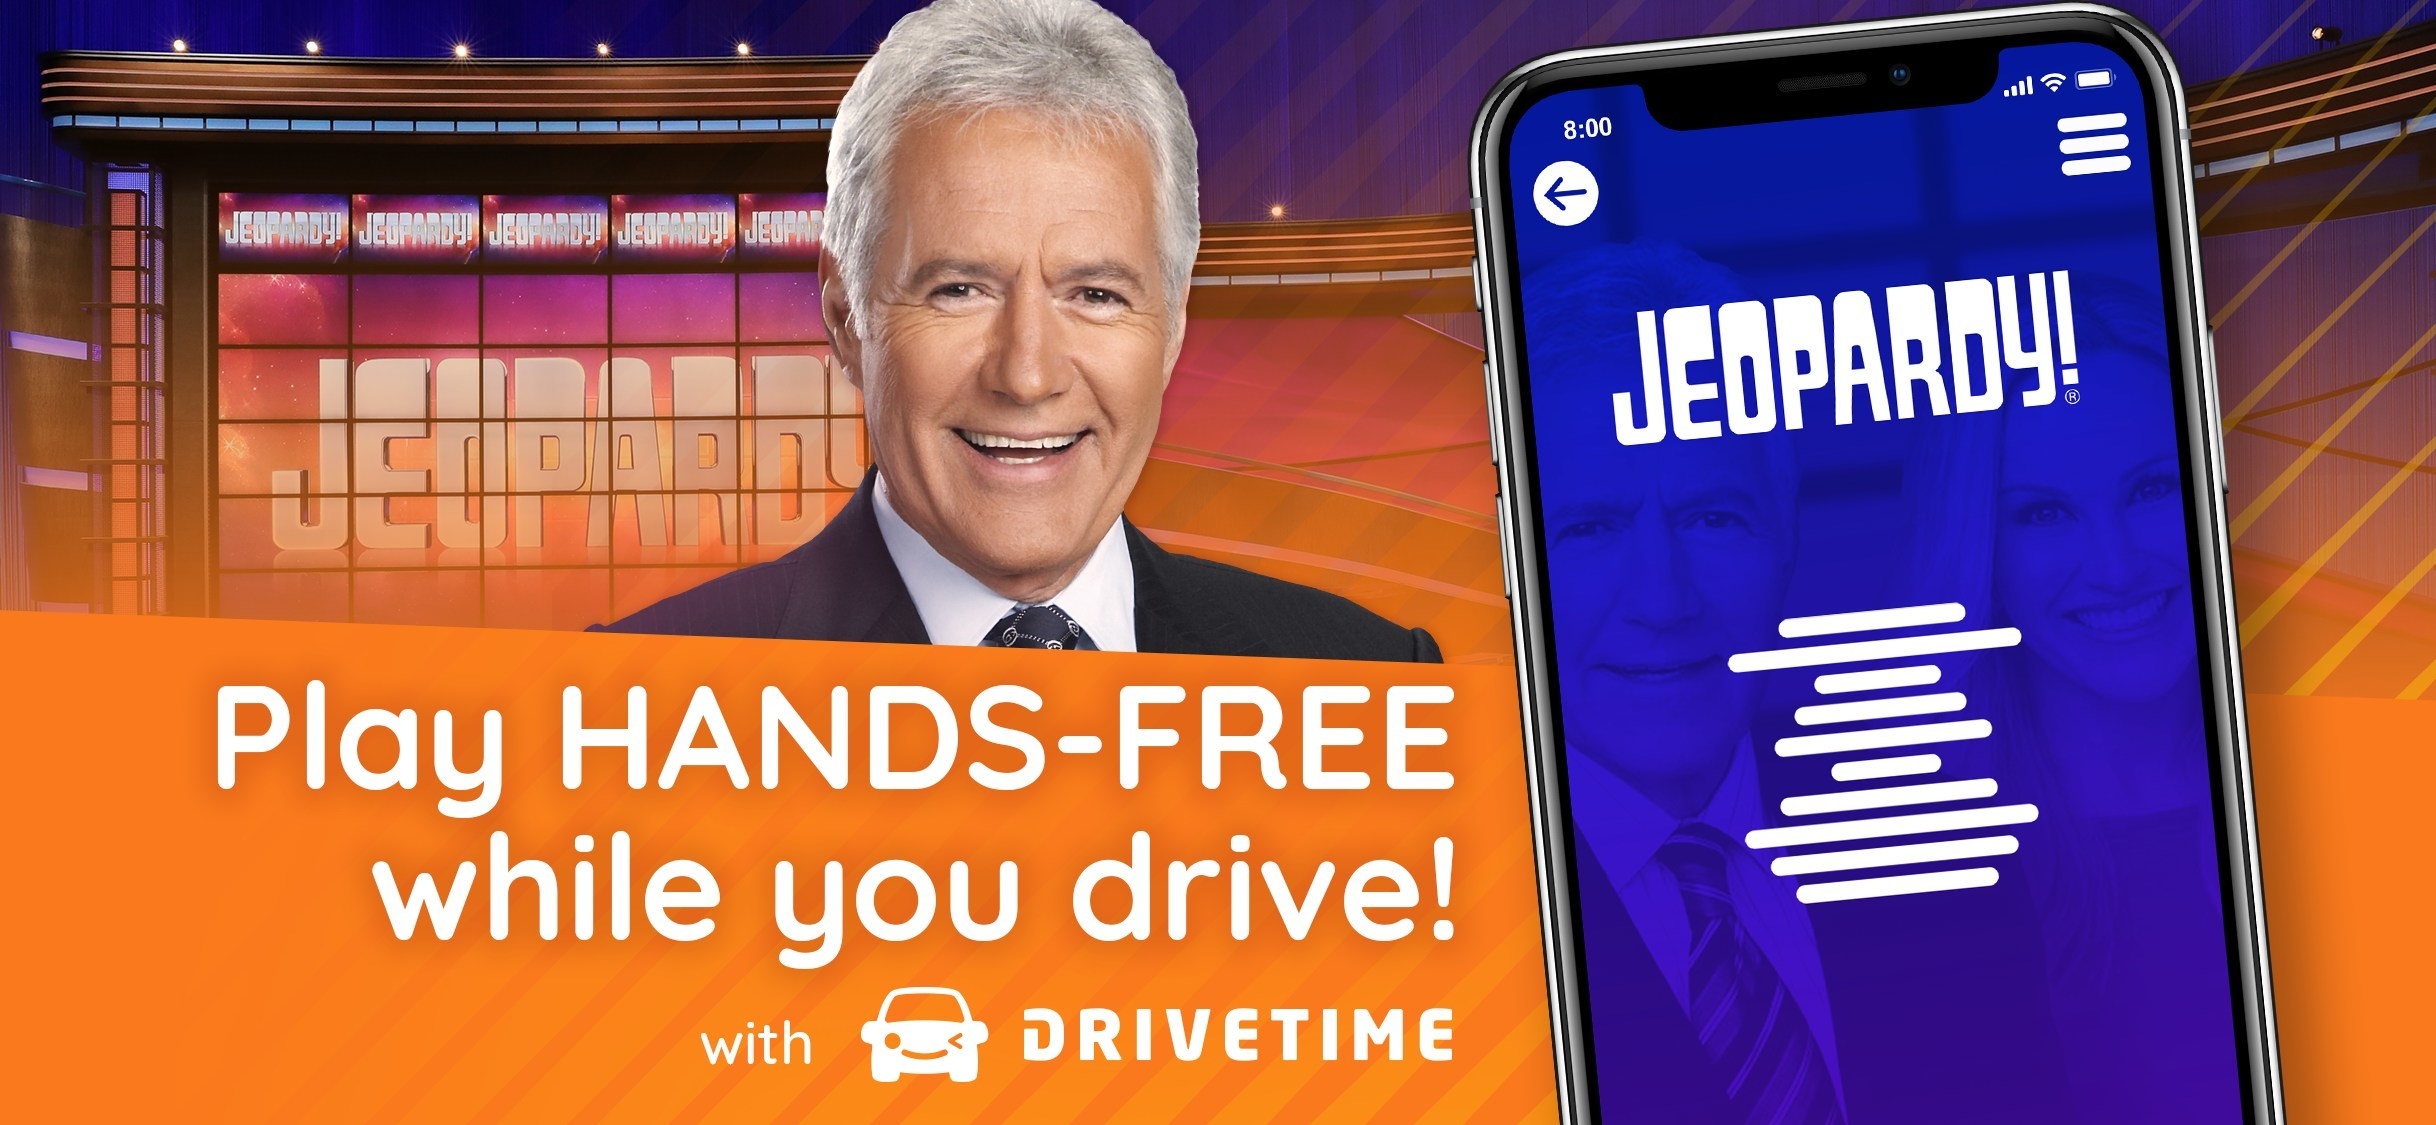 Drivetime Launches JEOPARDY!® on Drivetime, Announces $11M